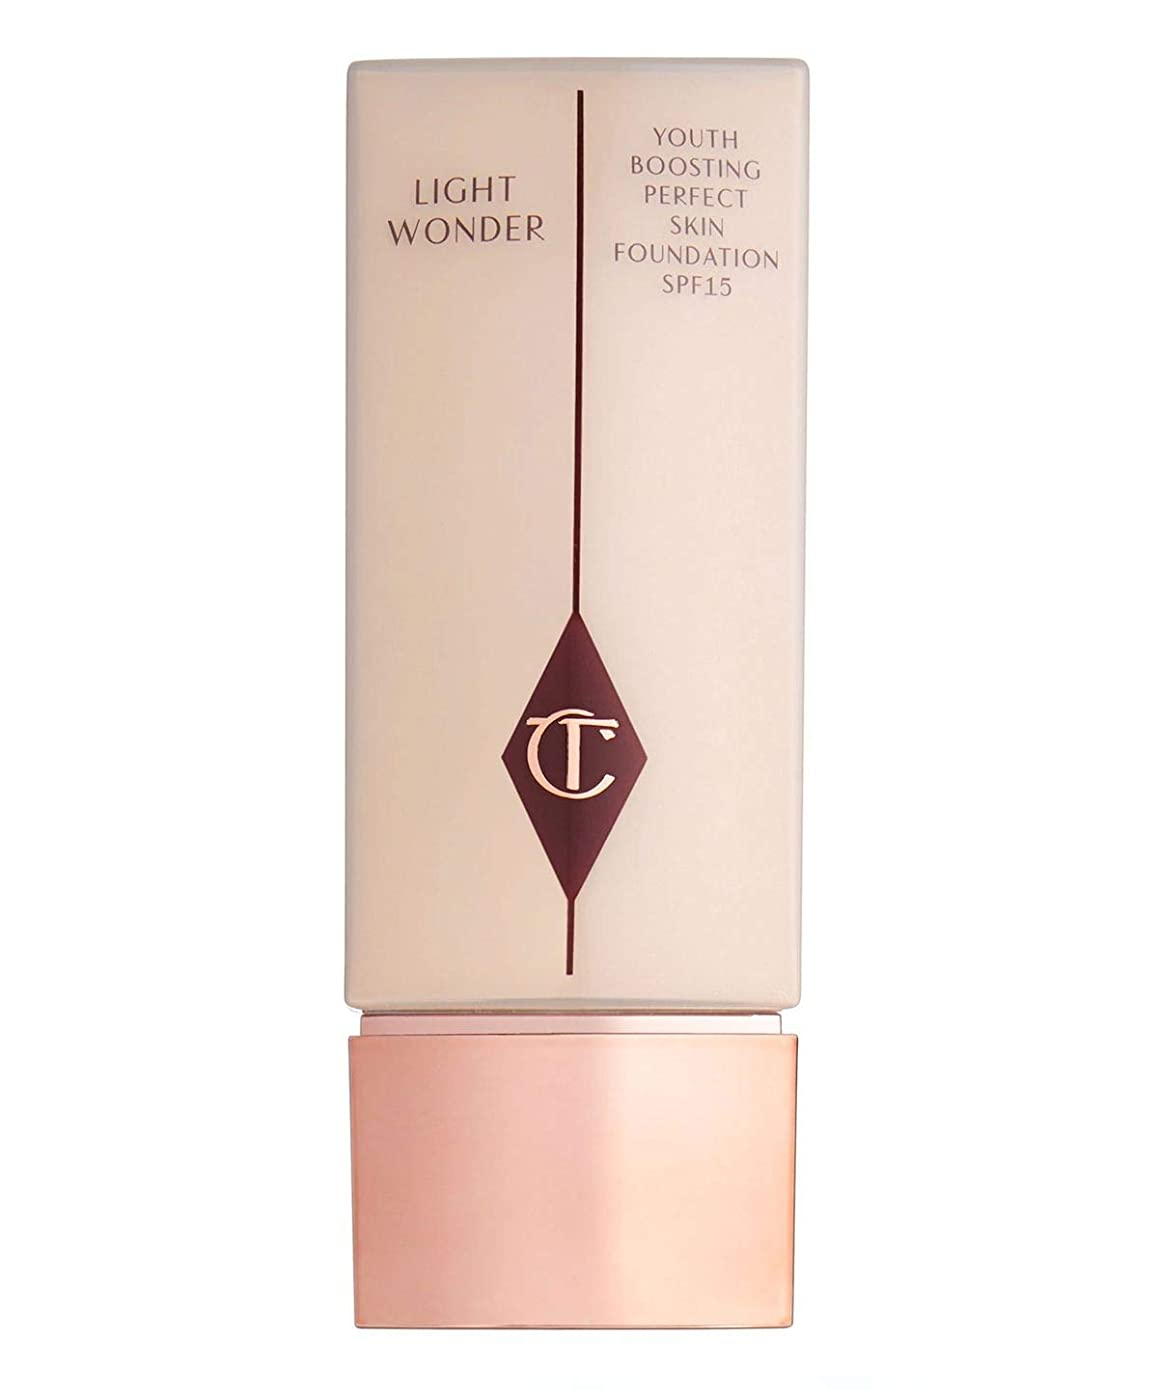 キロメートルコモランマ見つけたCHARLOTTE TILBURY Light Wonder foundation SPF 15 , Fair 01 by CHARLOTTE TILBURY